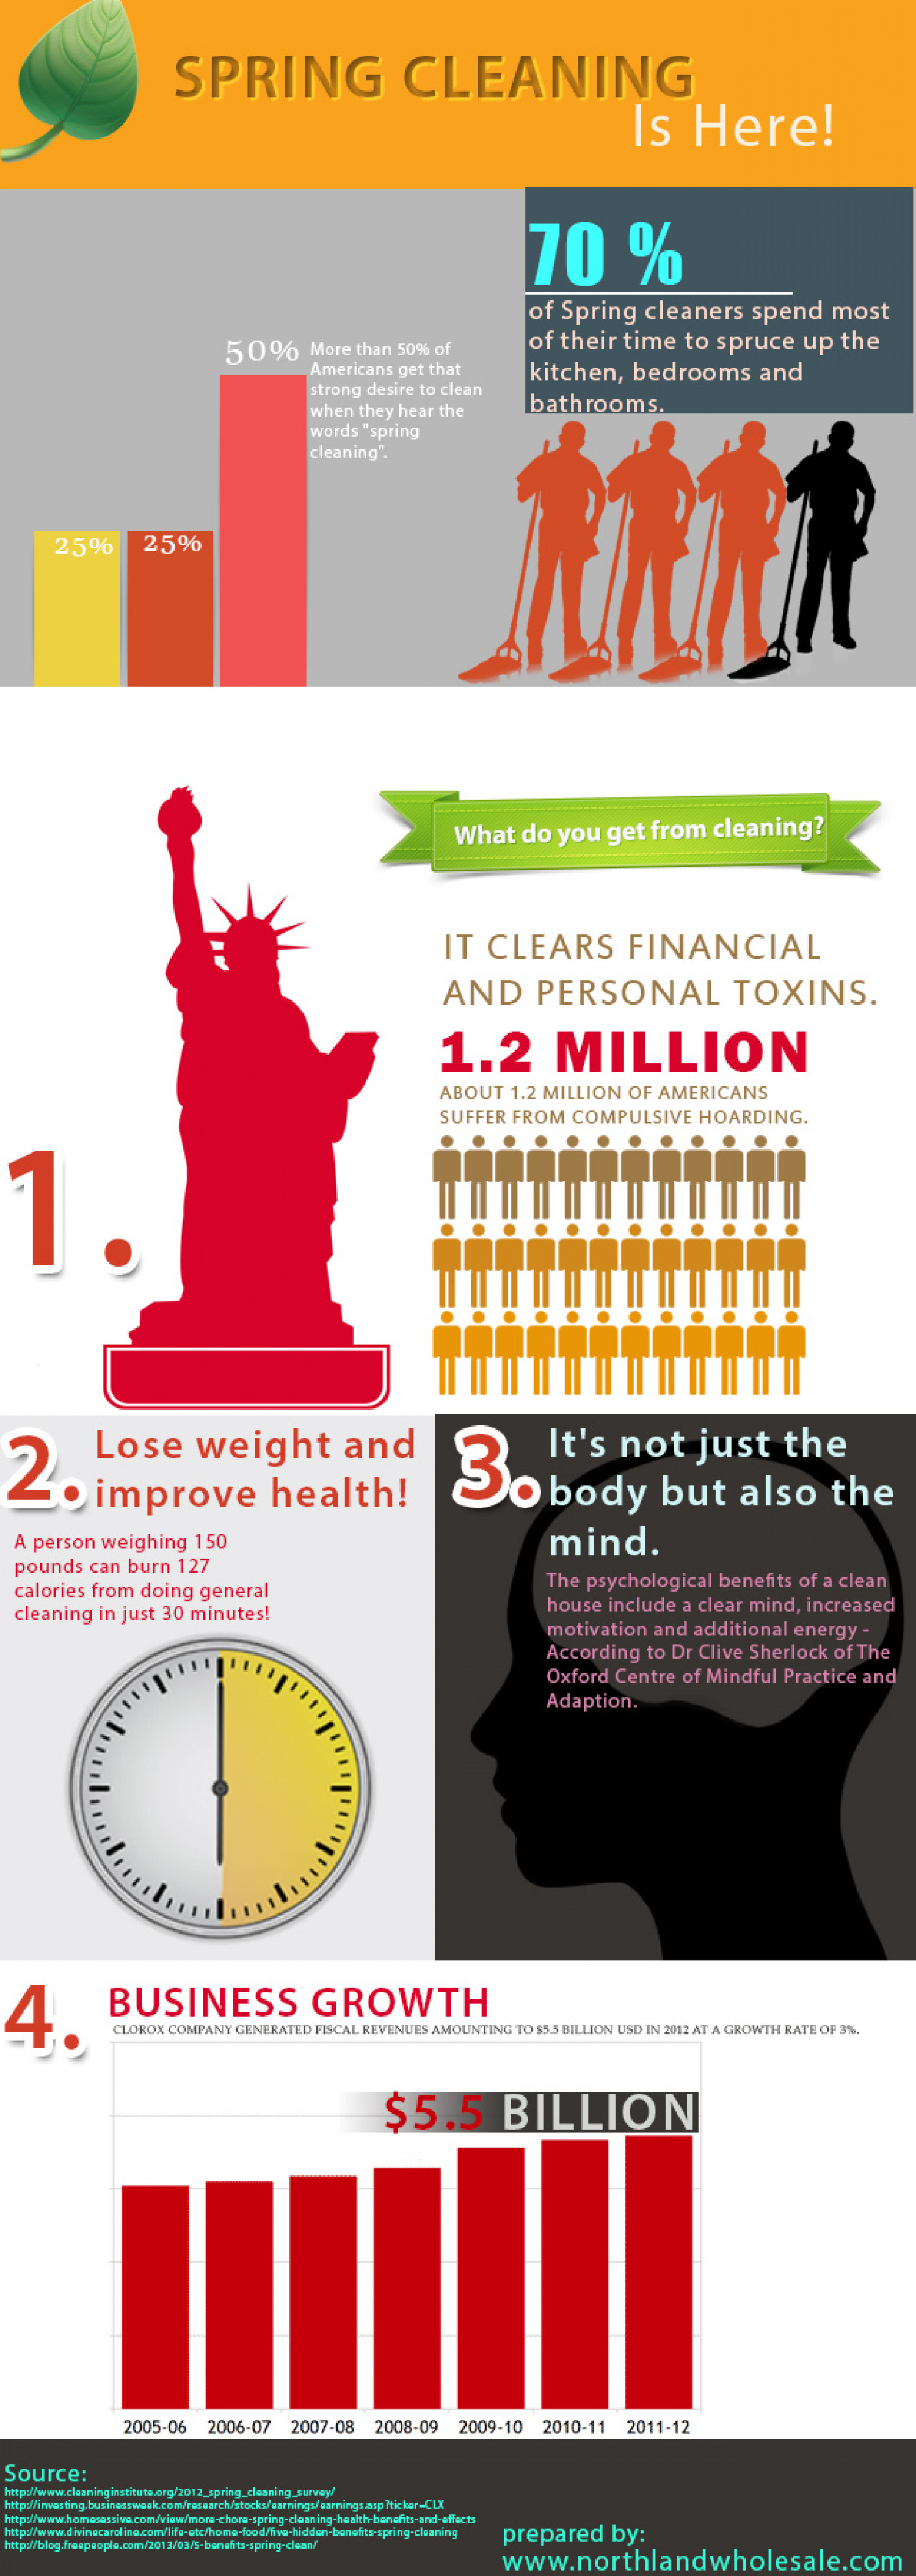 Spring Cleaning Is Here! Infographic